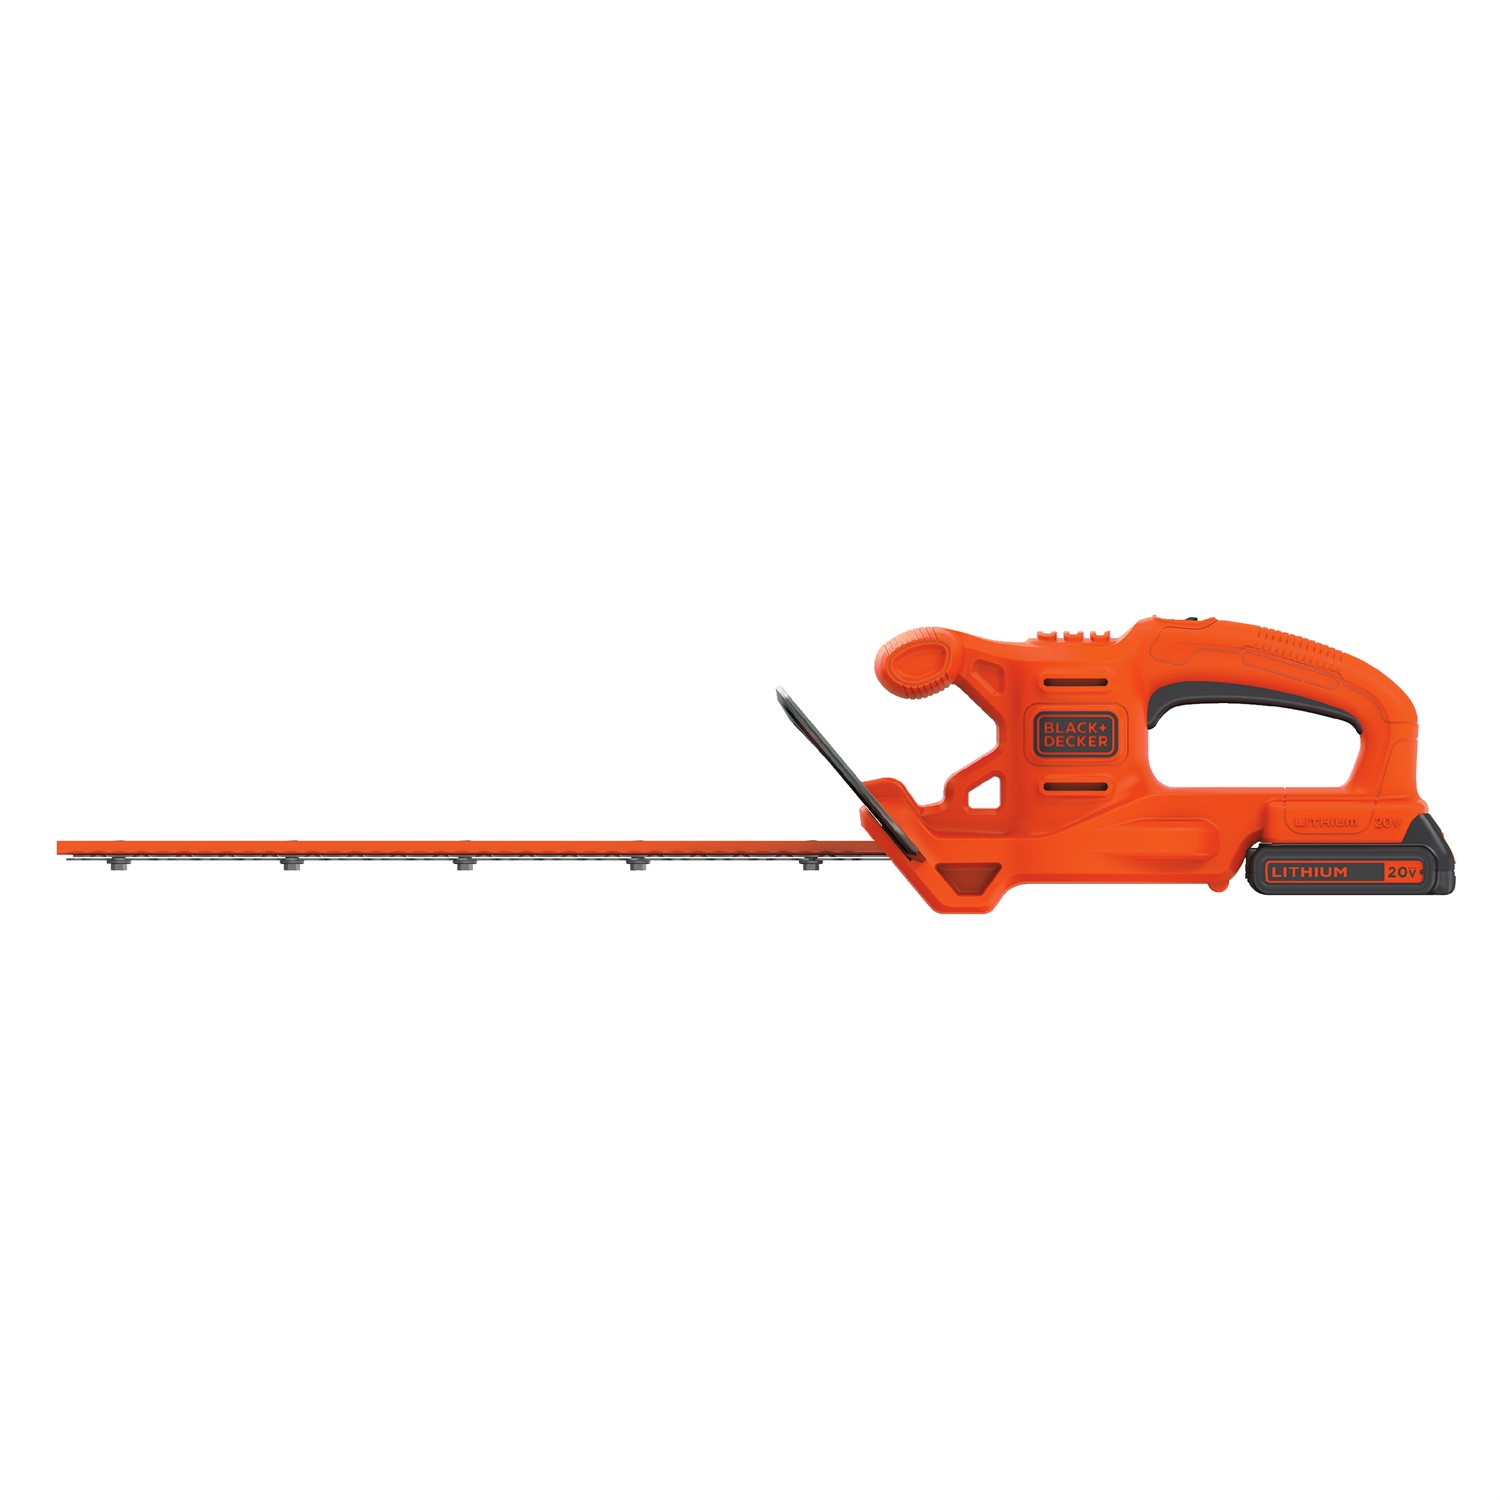 BLACK+DECKER LHT218C1 20V MAX 18-INCH LITHIUM-ION CORDLESS HEDGE TRIMMER